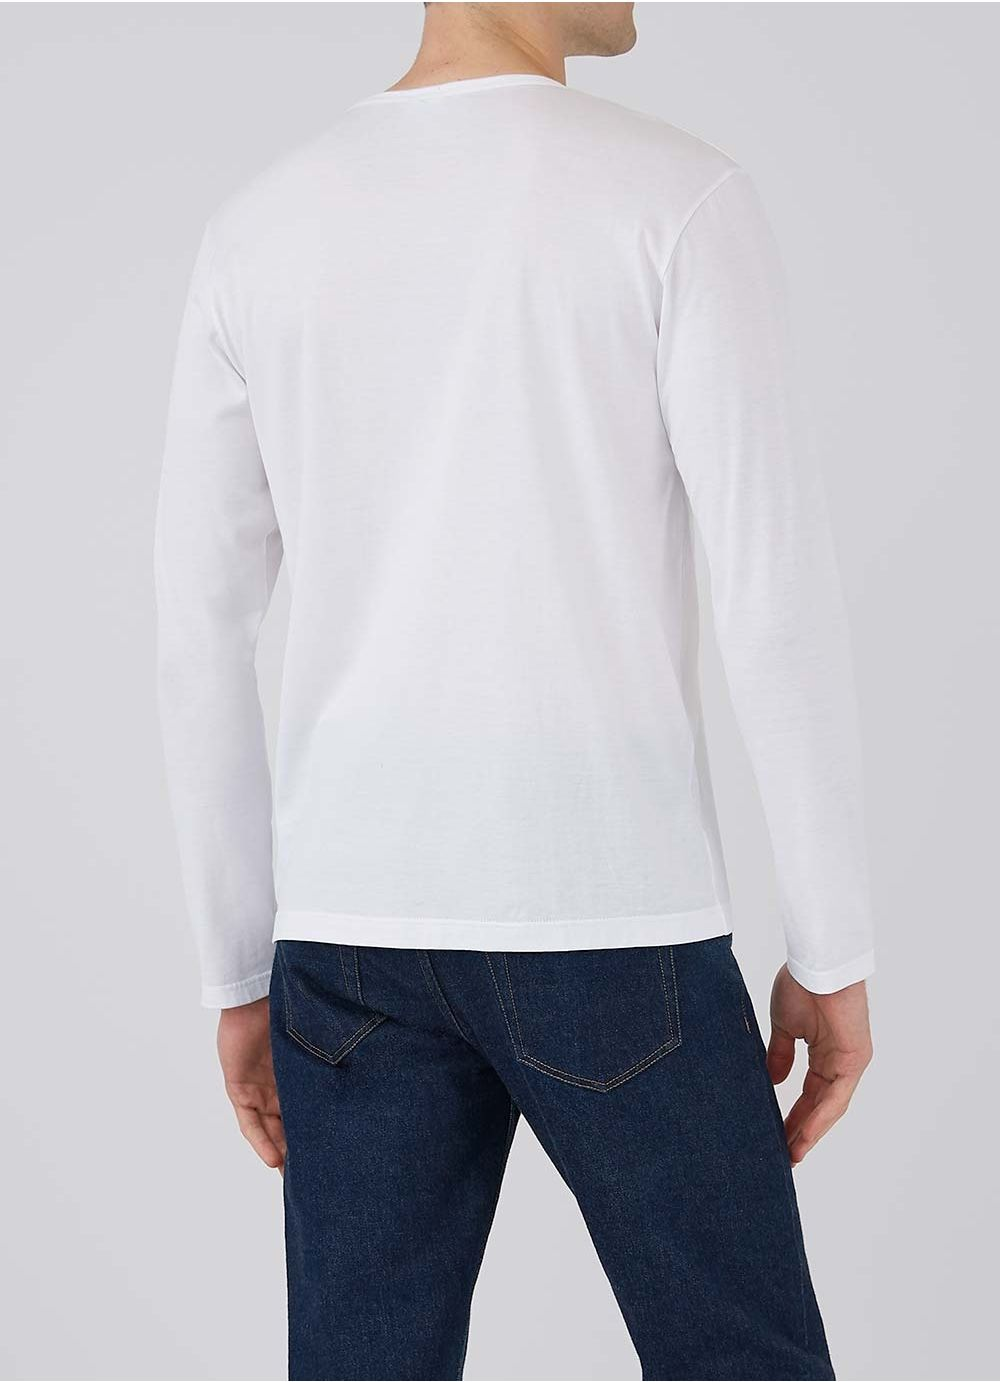 Long Sleeve T-Shirt - White